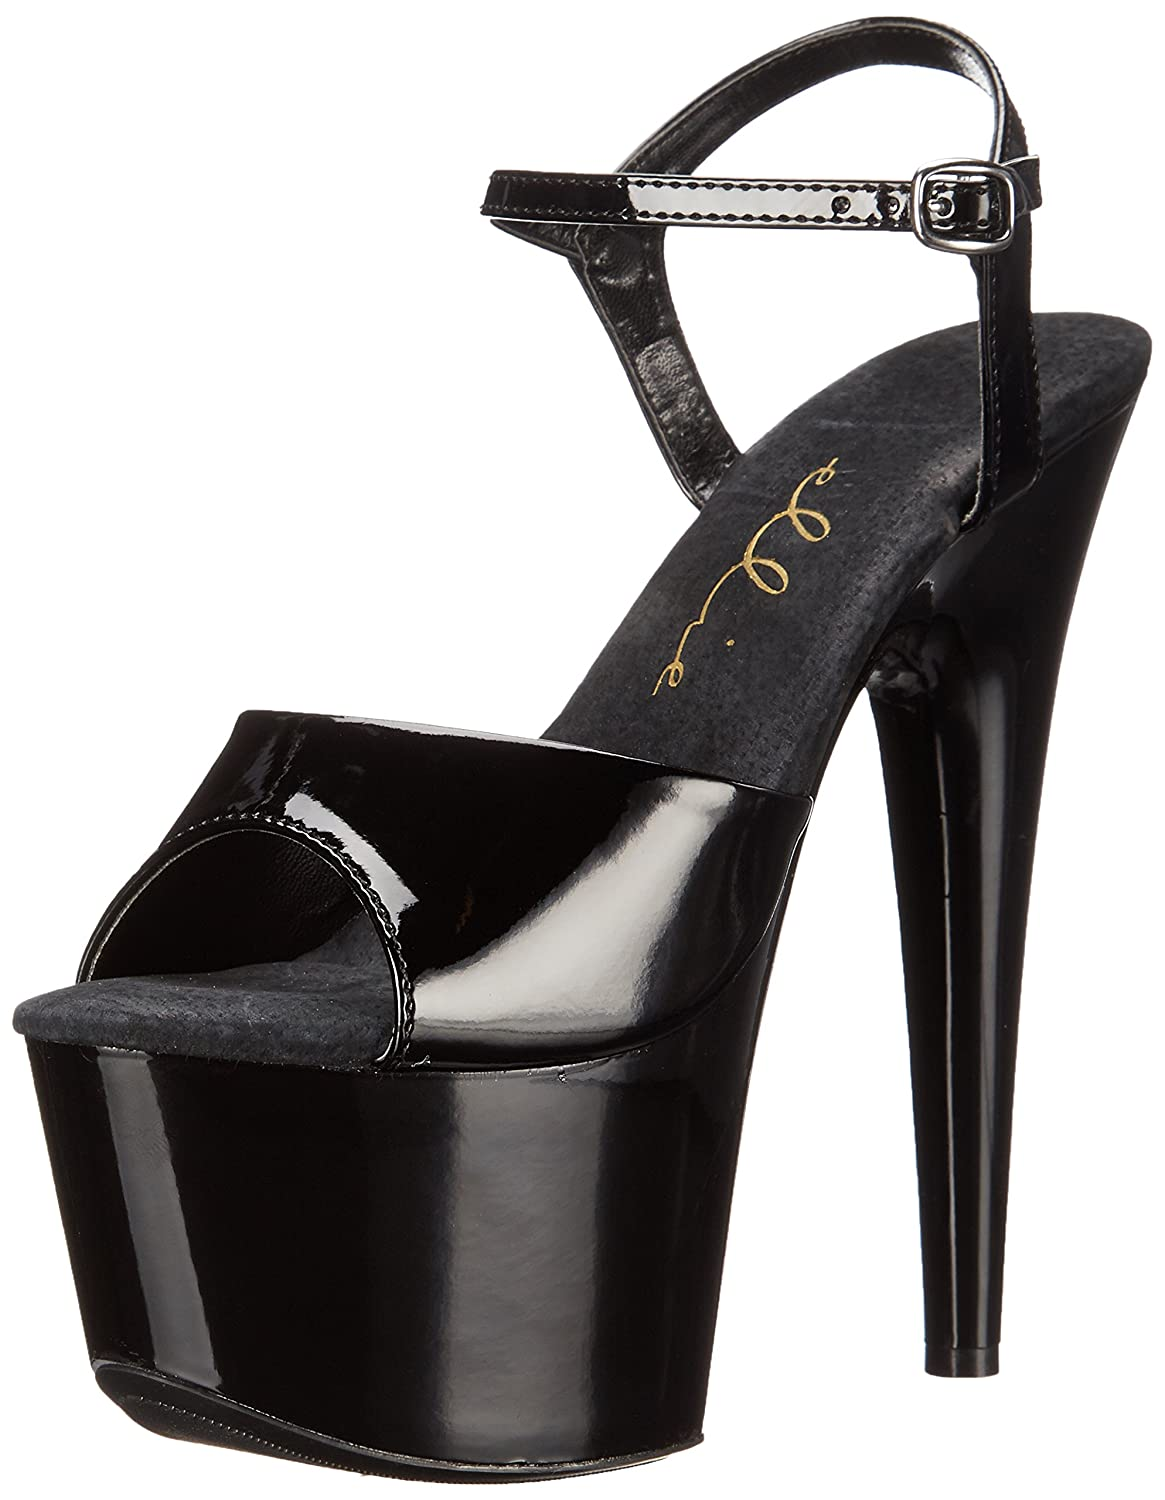 Ellie Shoes Women's 709 Juliet Platform Sandal B001N89OEQ 6 B(M) US|Black